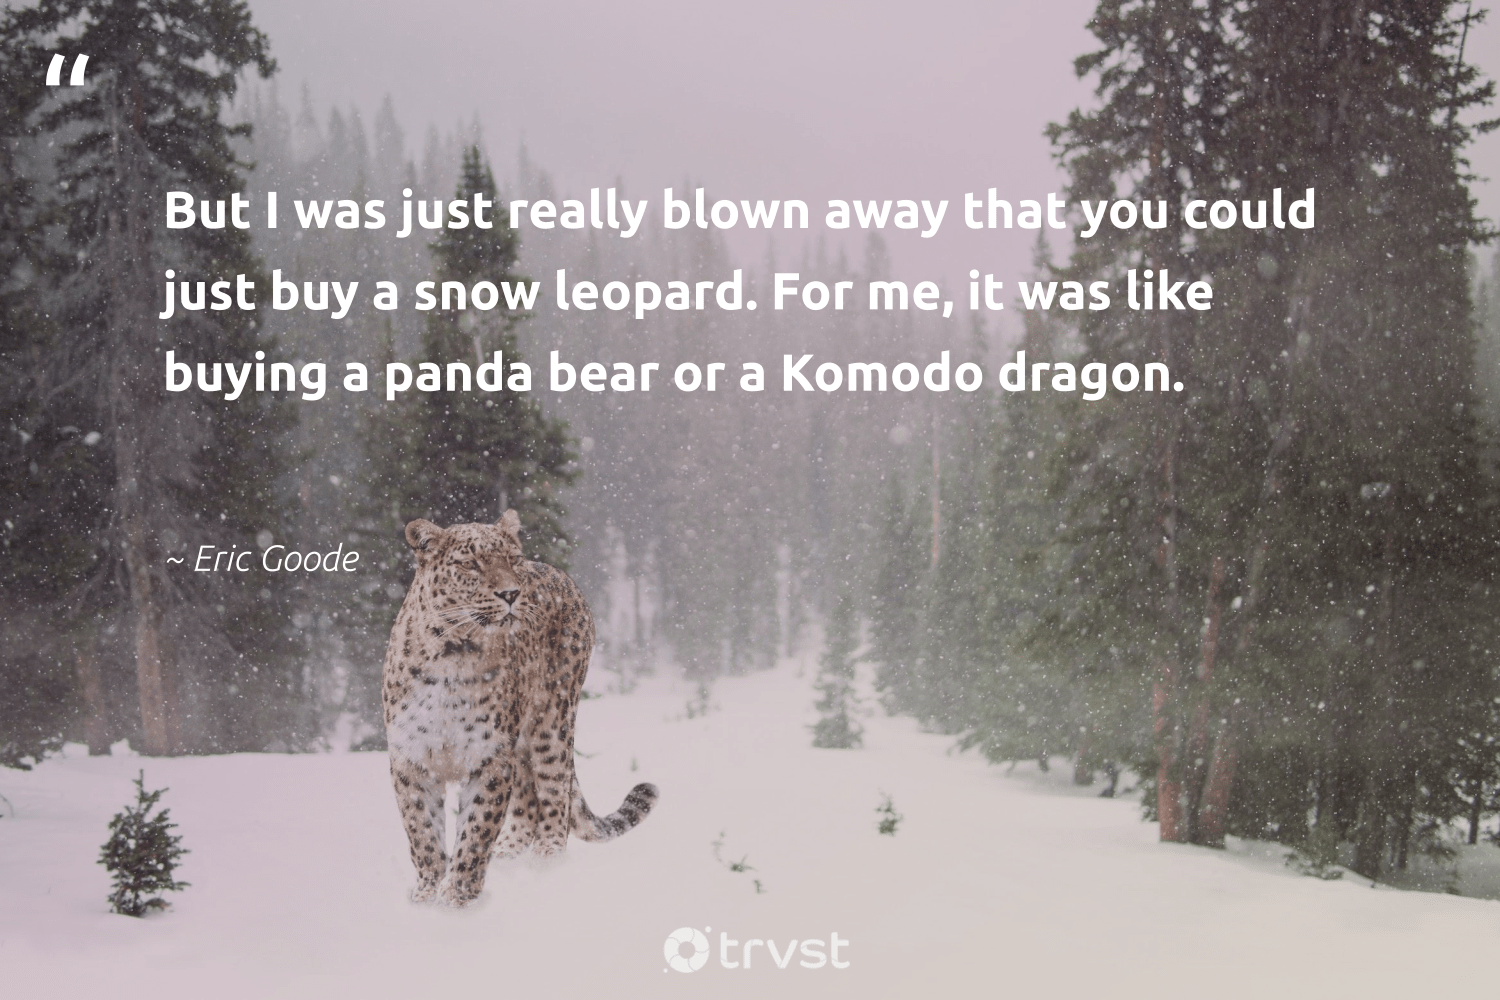 """""""But I was just really blown away that you could just buy a snow leopard. For me, it was like buying a panda bear or a Komodo dragon.""""  - Eric Goode #trvst #quotes #snow #leopard #bear #hurricane #conservation #savetheplanet #ecoconscious #flooding #perfectnature #earth"""